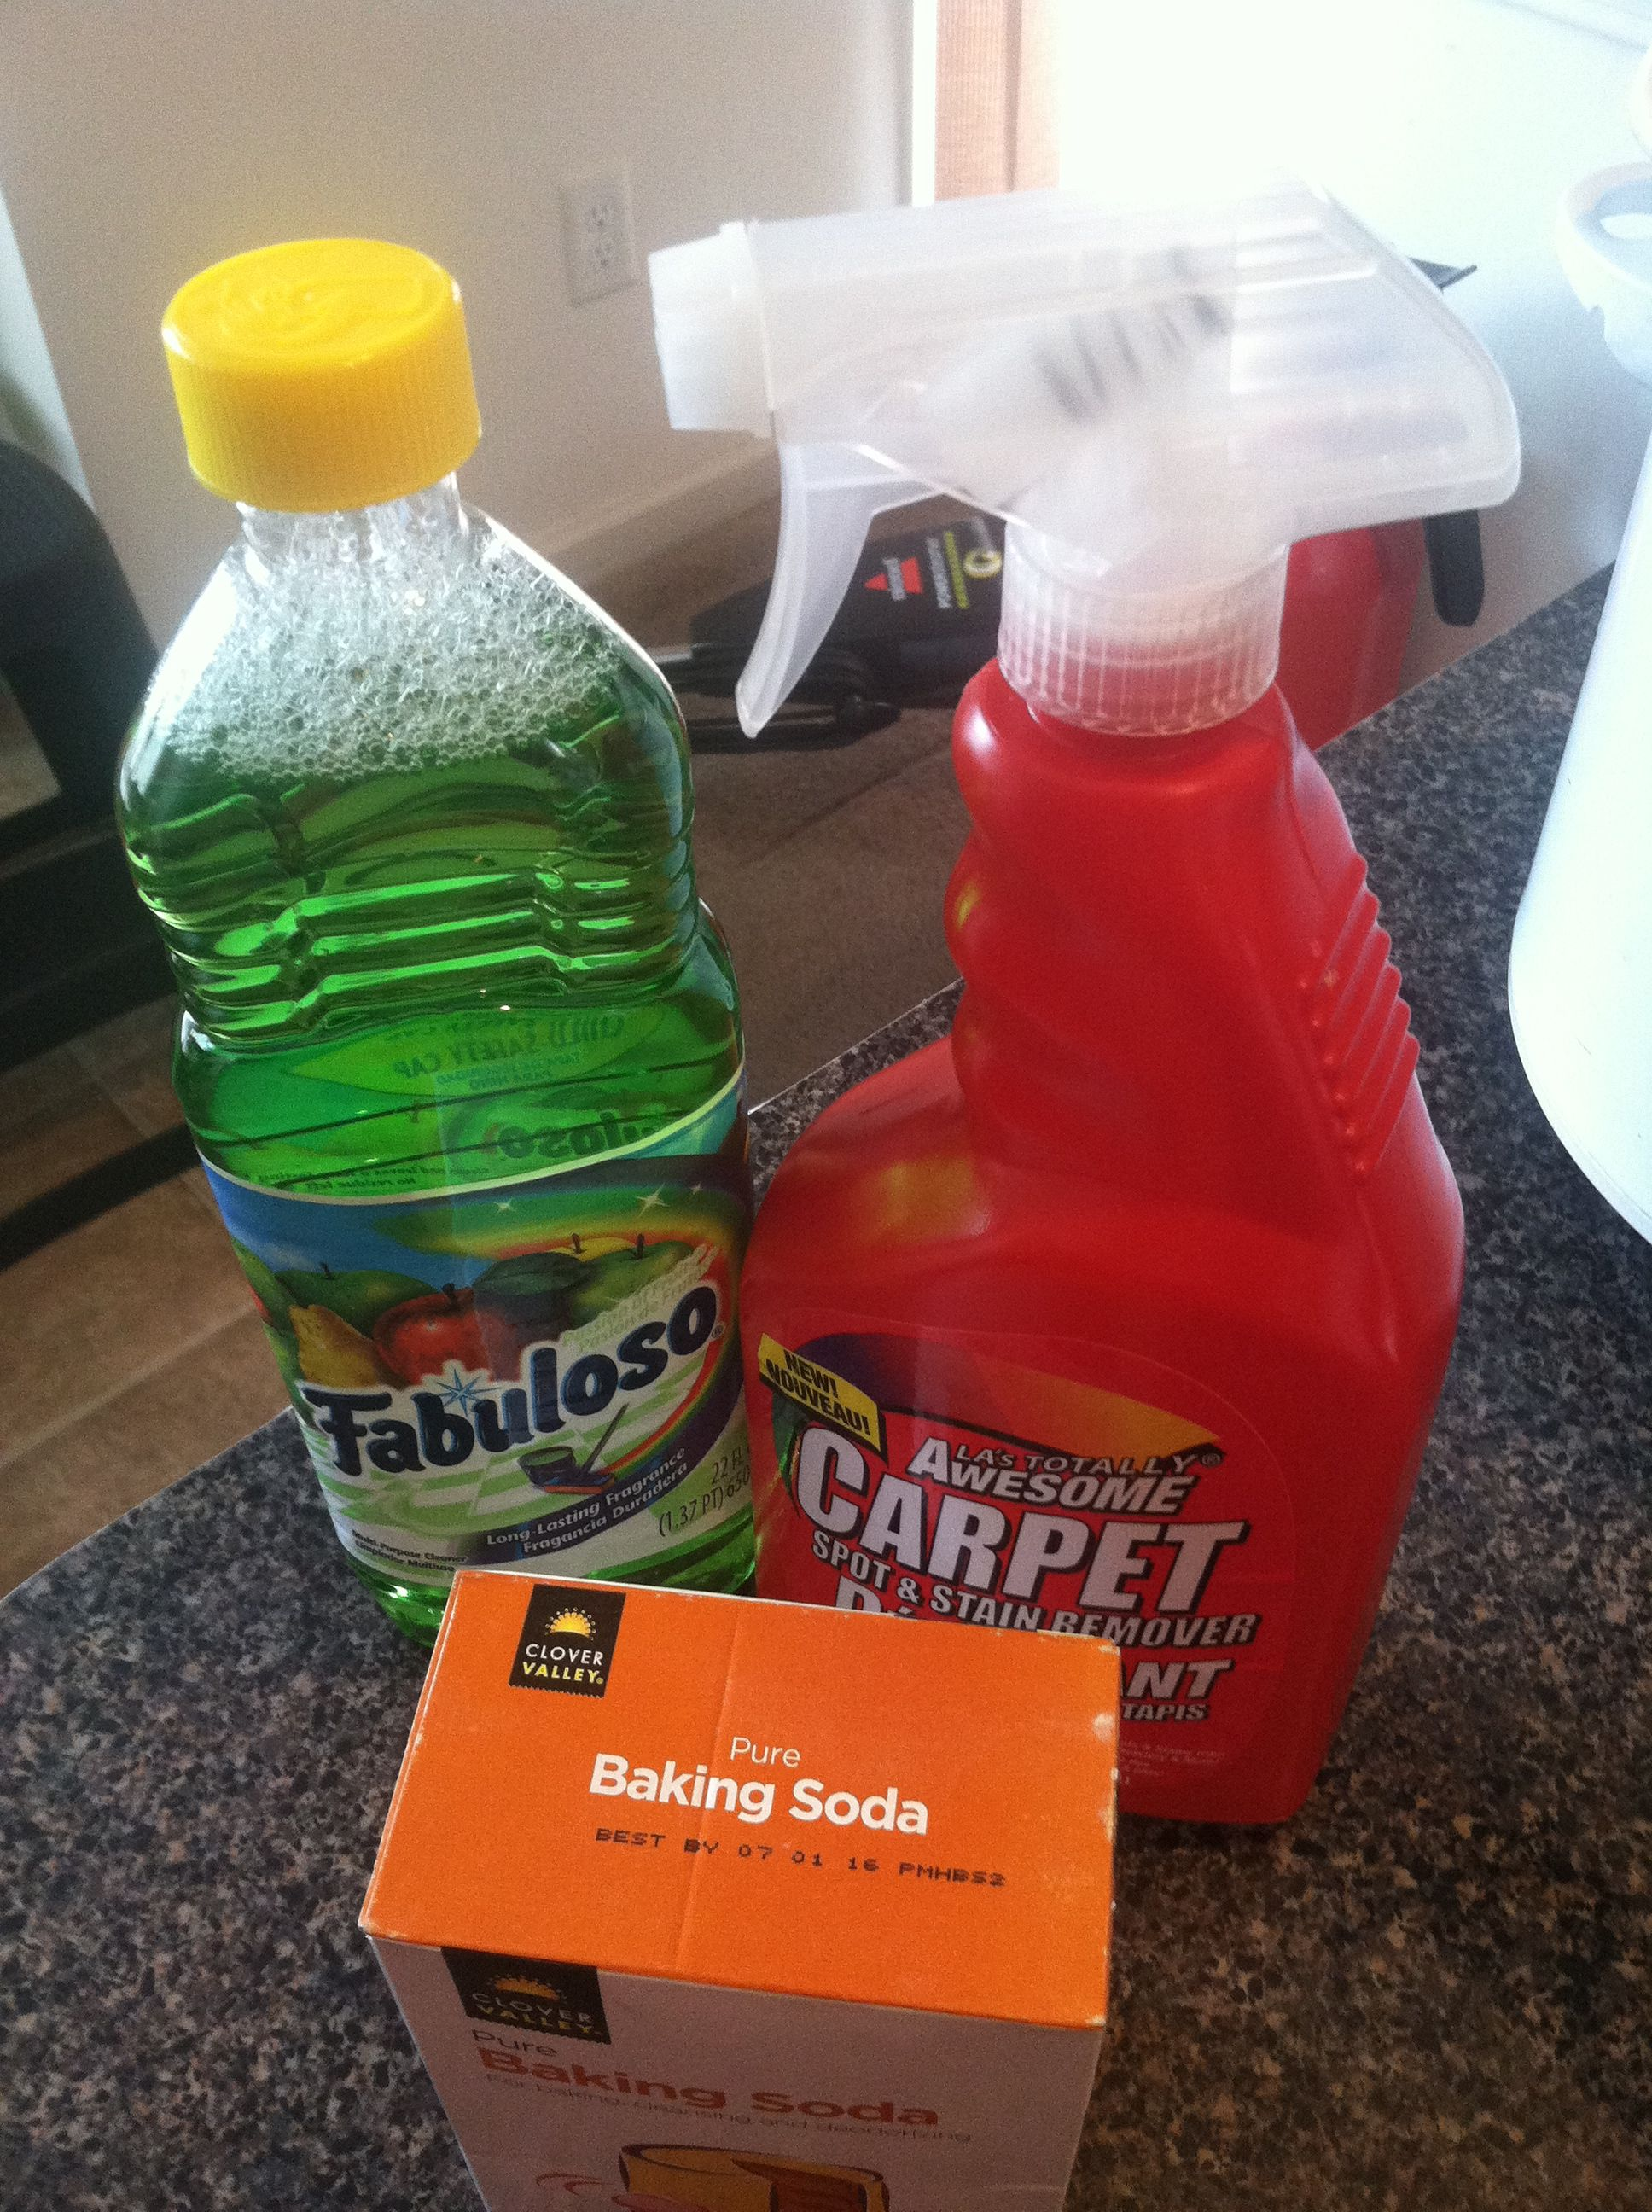 Do It Yourself Shampoo Carpet Cleaner This Was Purchased At The Dollar Tree Fabuloso And Baking Soda Just Add Water Total Cost 2 55